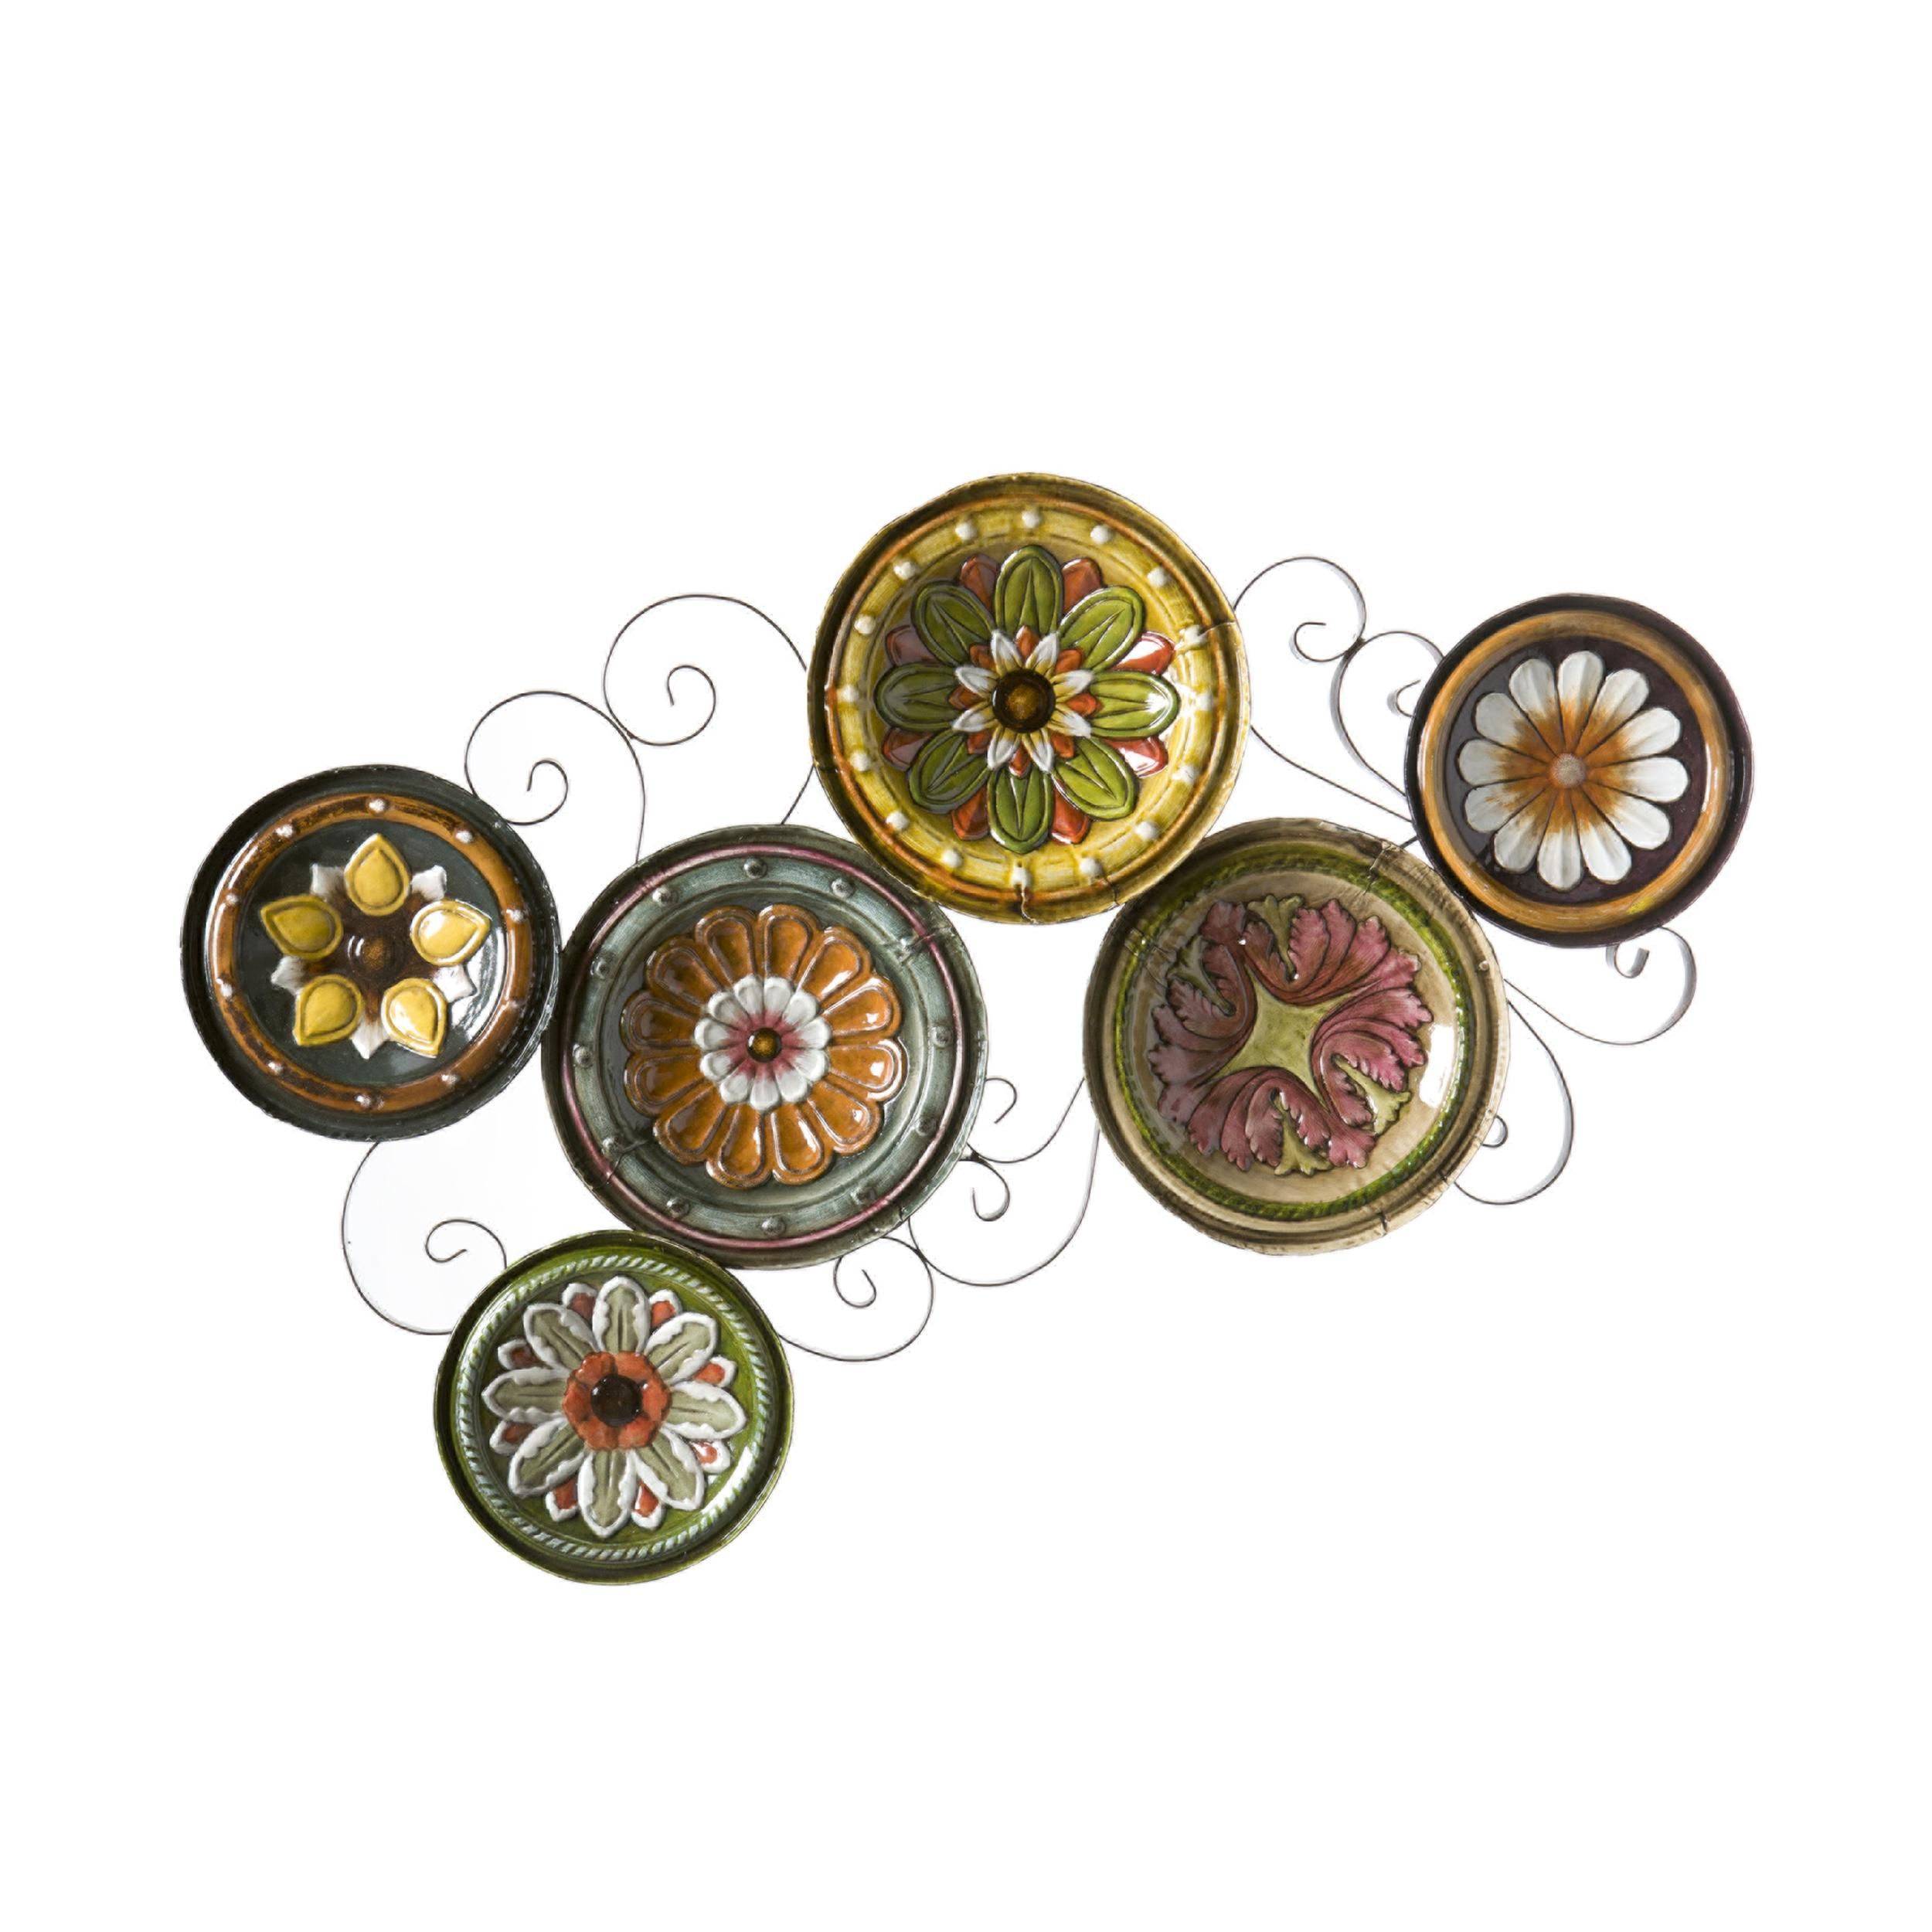 amazoncom sei scattered italian plates wall art wall sculptures - Decorative Wall Plates